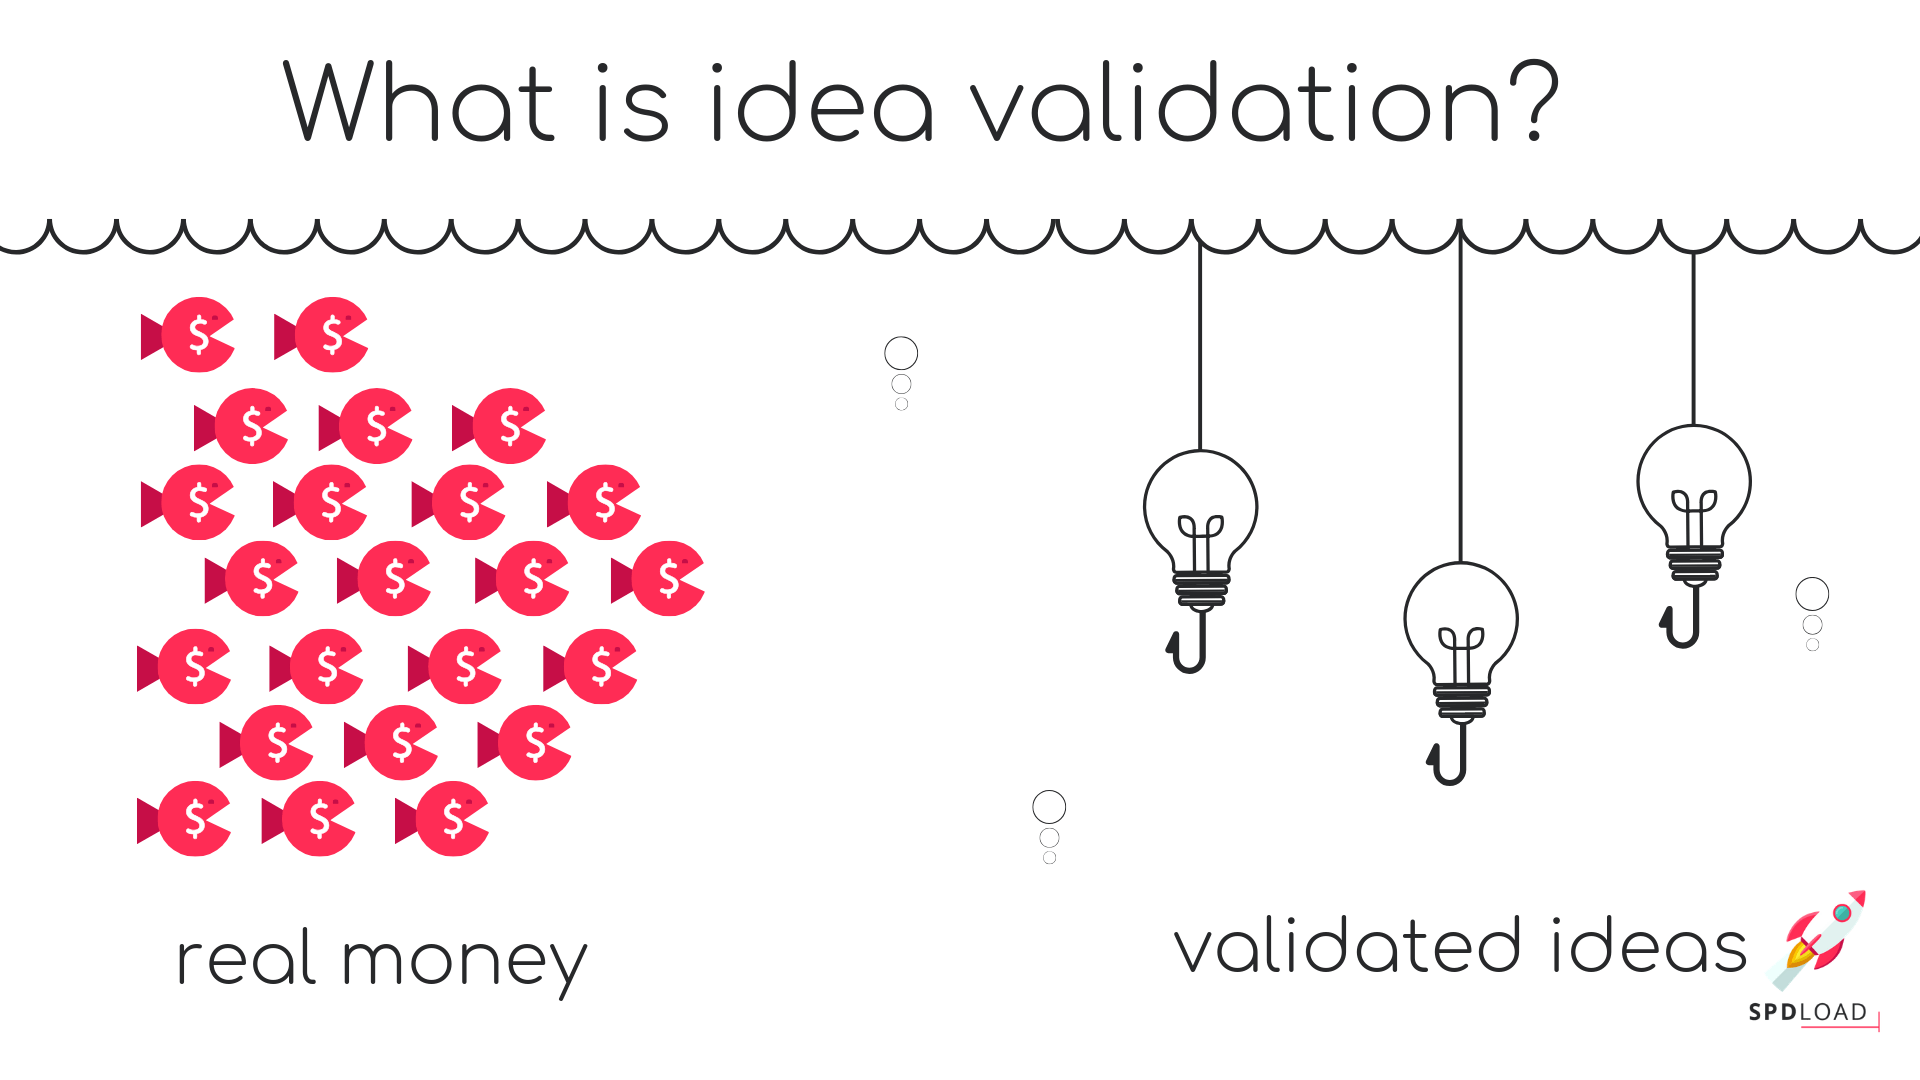 validated ideas attract money to tour business